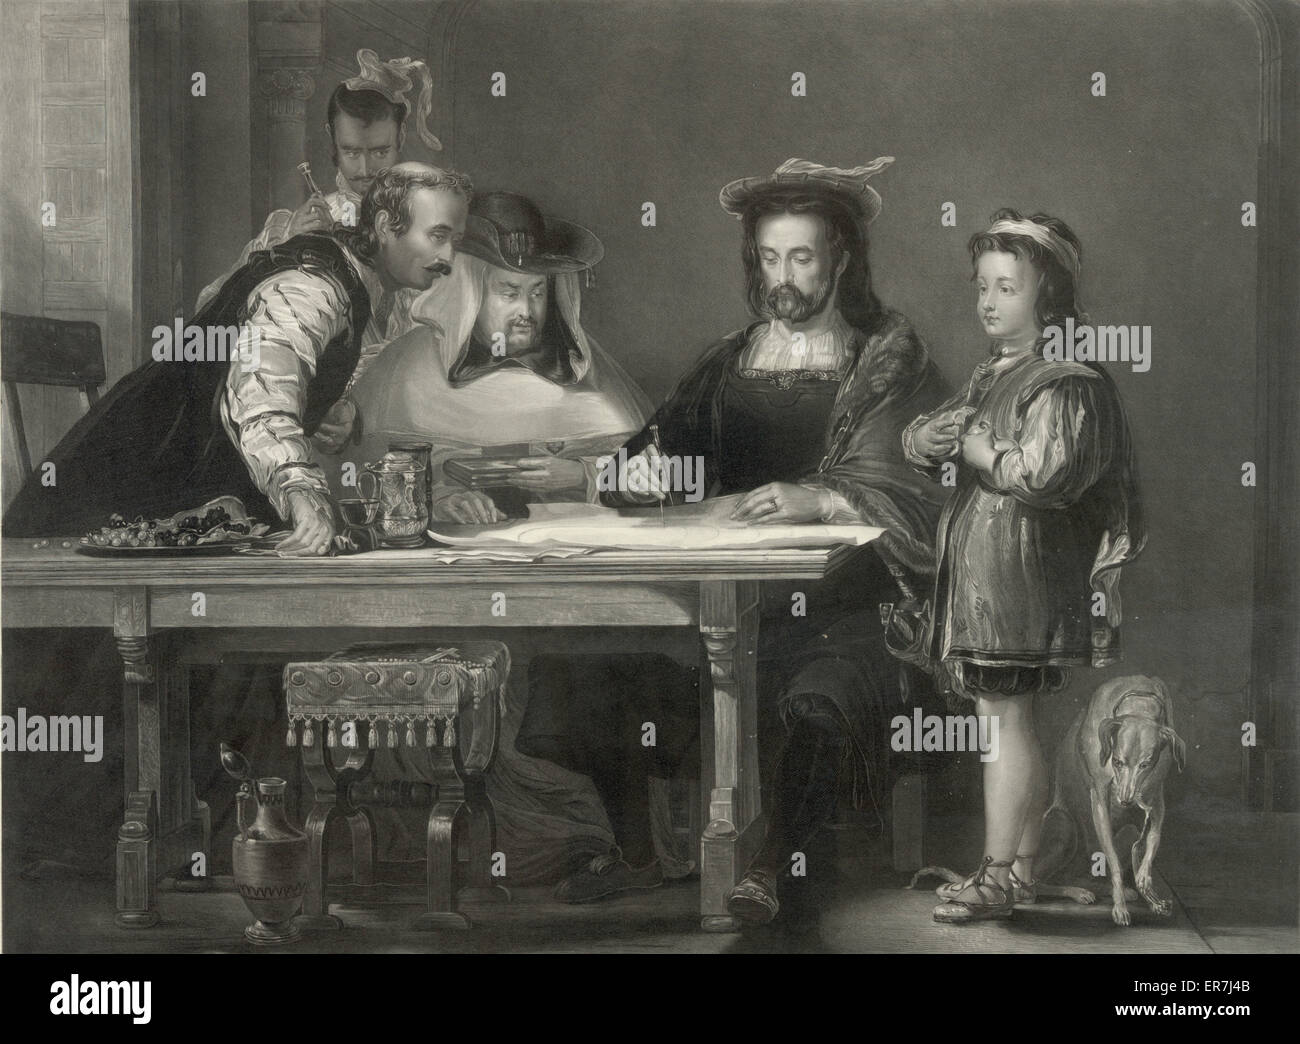 Columbus propounding his theory of a New World. - Stock Image